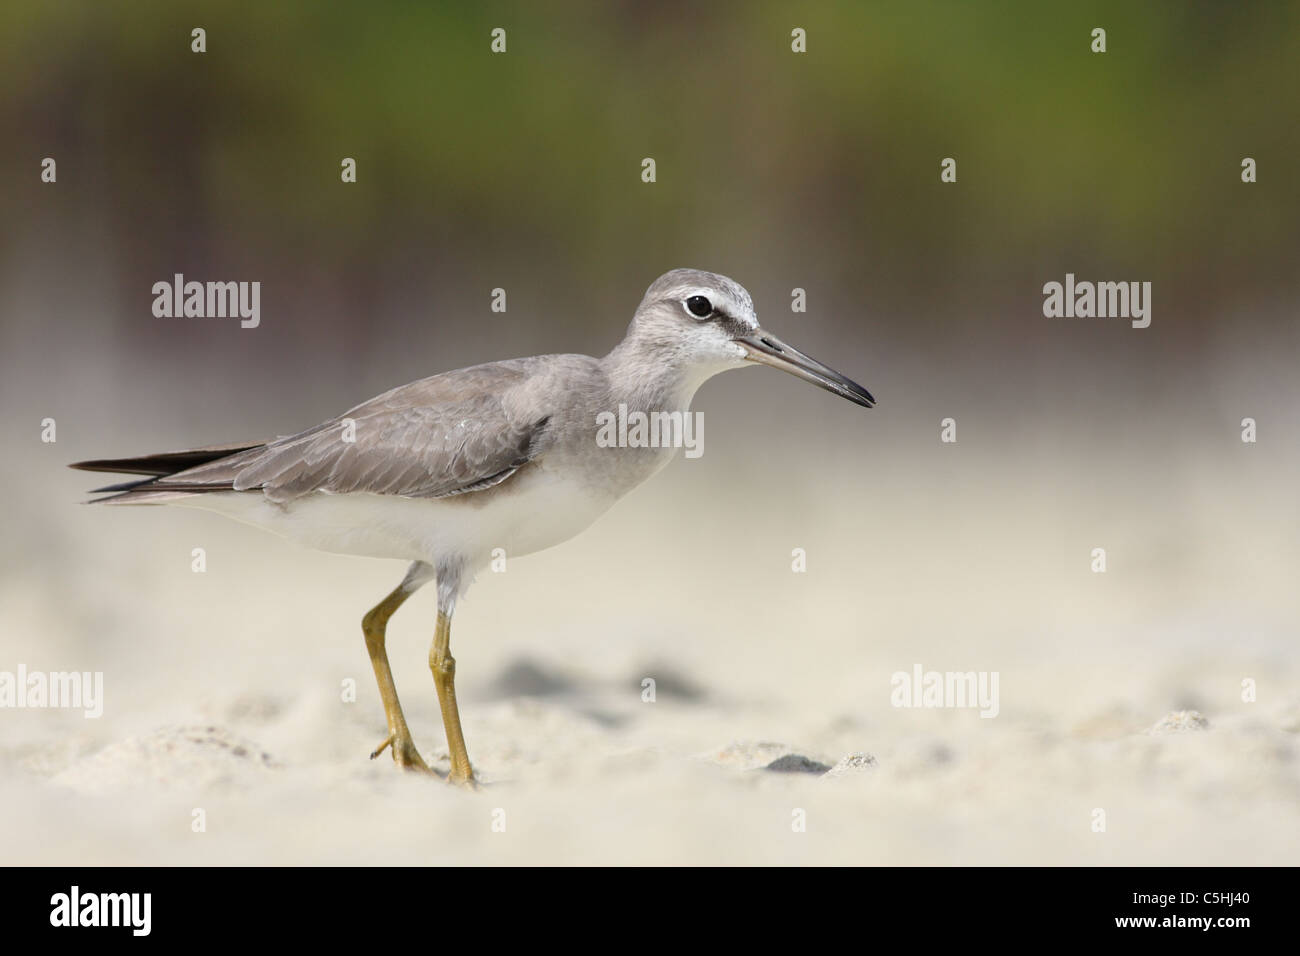 Greay-tailed Tattler (Heteroscelus brevipes) - Stock Image